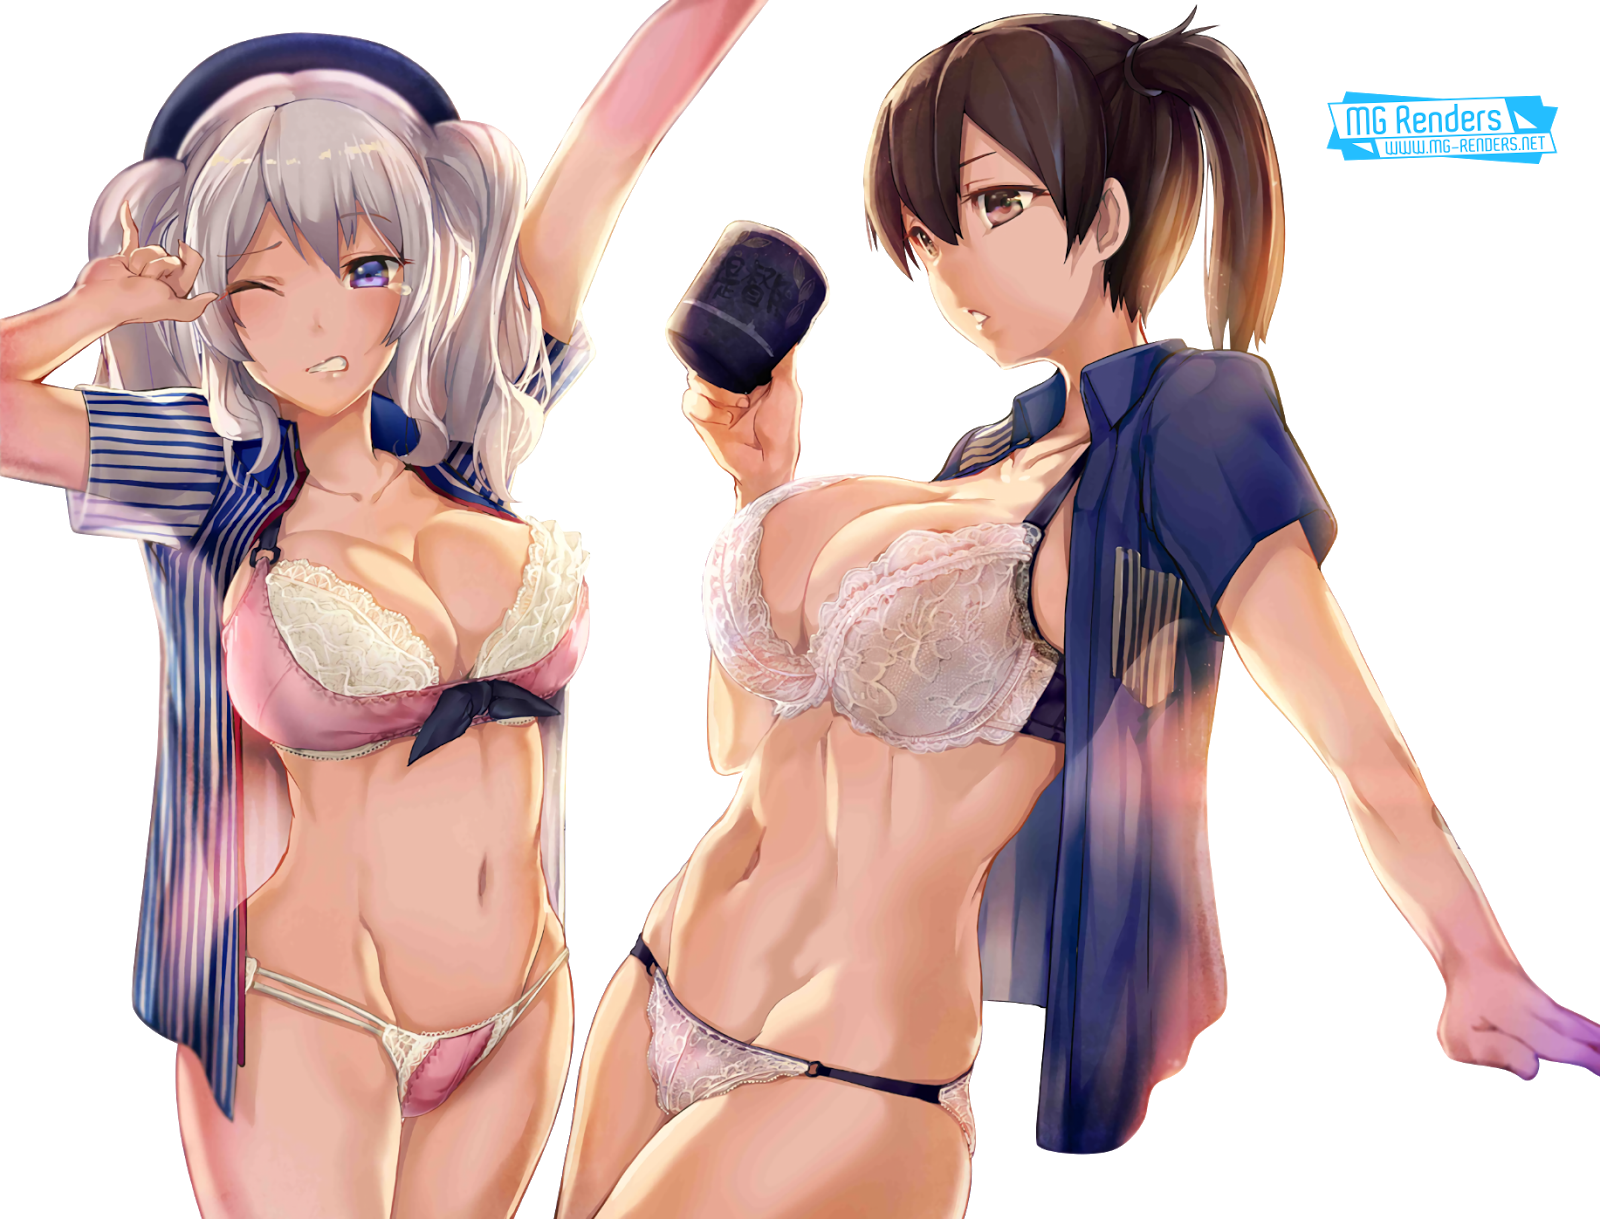 Tags: Anime, Render,  Huge Breasts,  Kaga,  Kantai Collection, Kancolle, 艦隊これくしょん,  Kashima,  Side tail,  PNG, Image, Picture